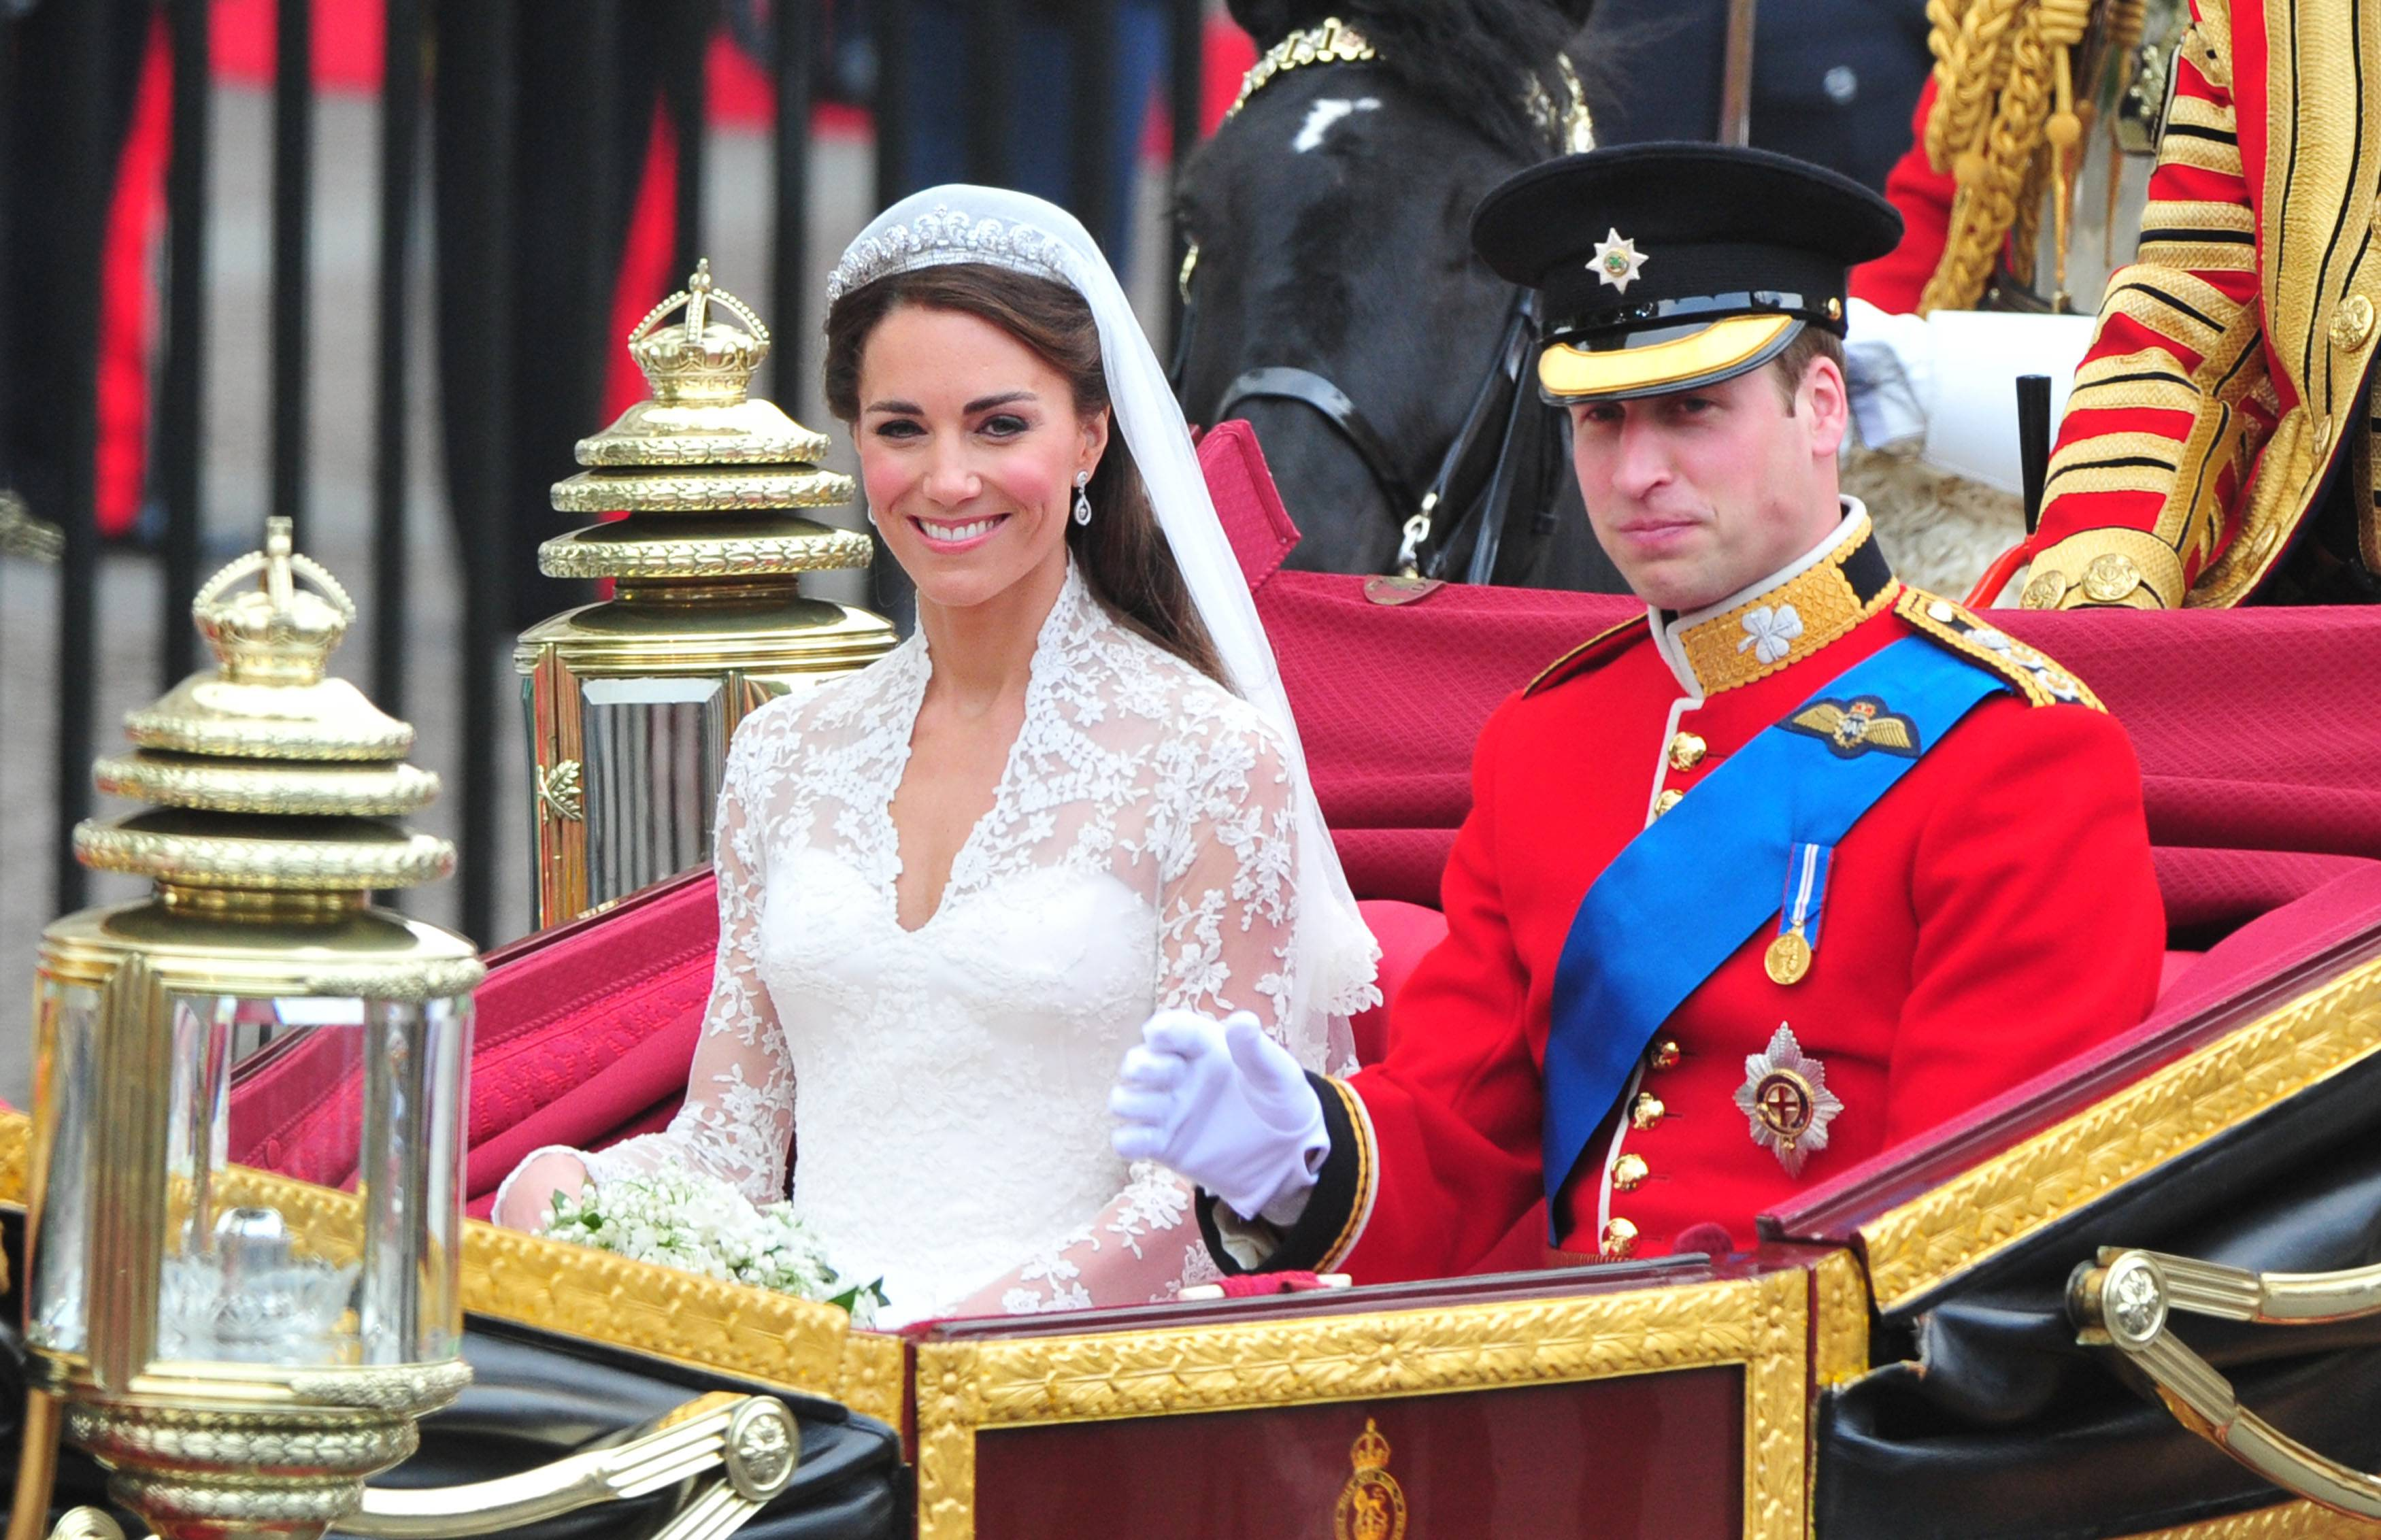 William e Kate Middleton: futuri Re e Regina d'Inghilterra